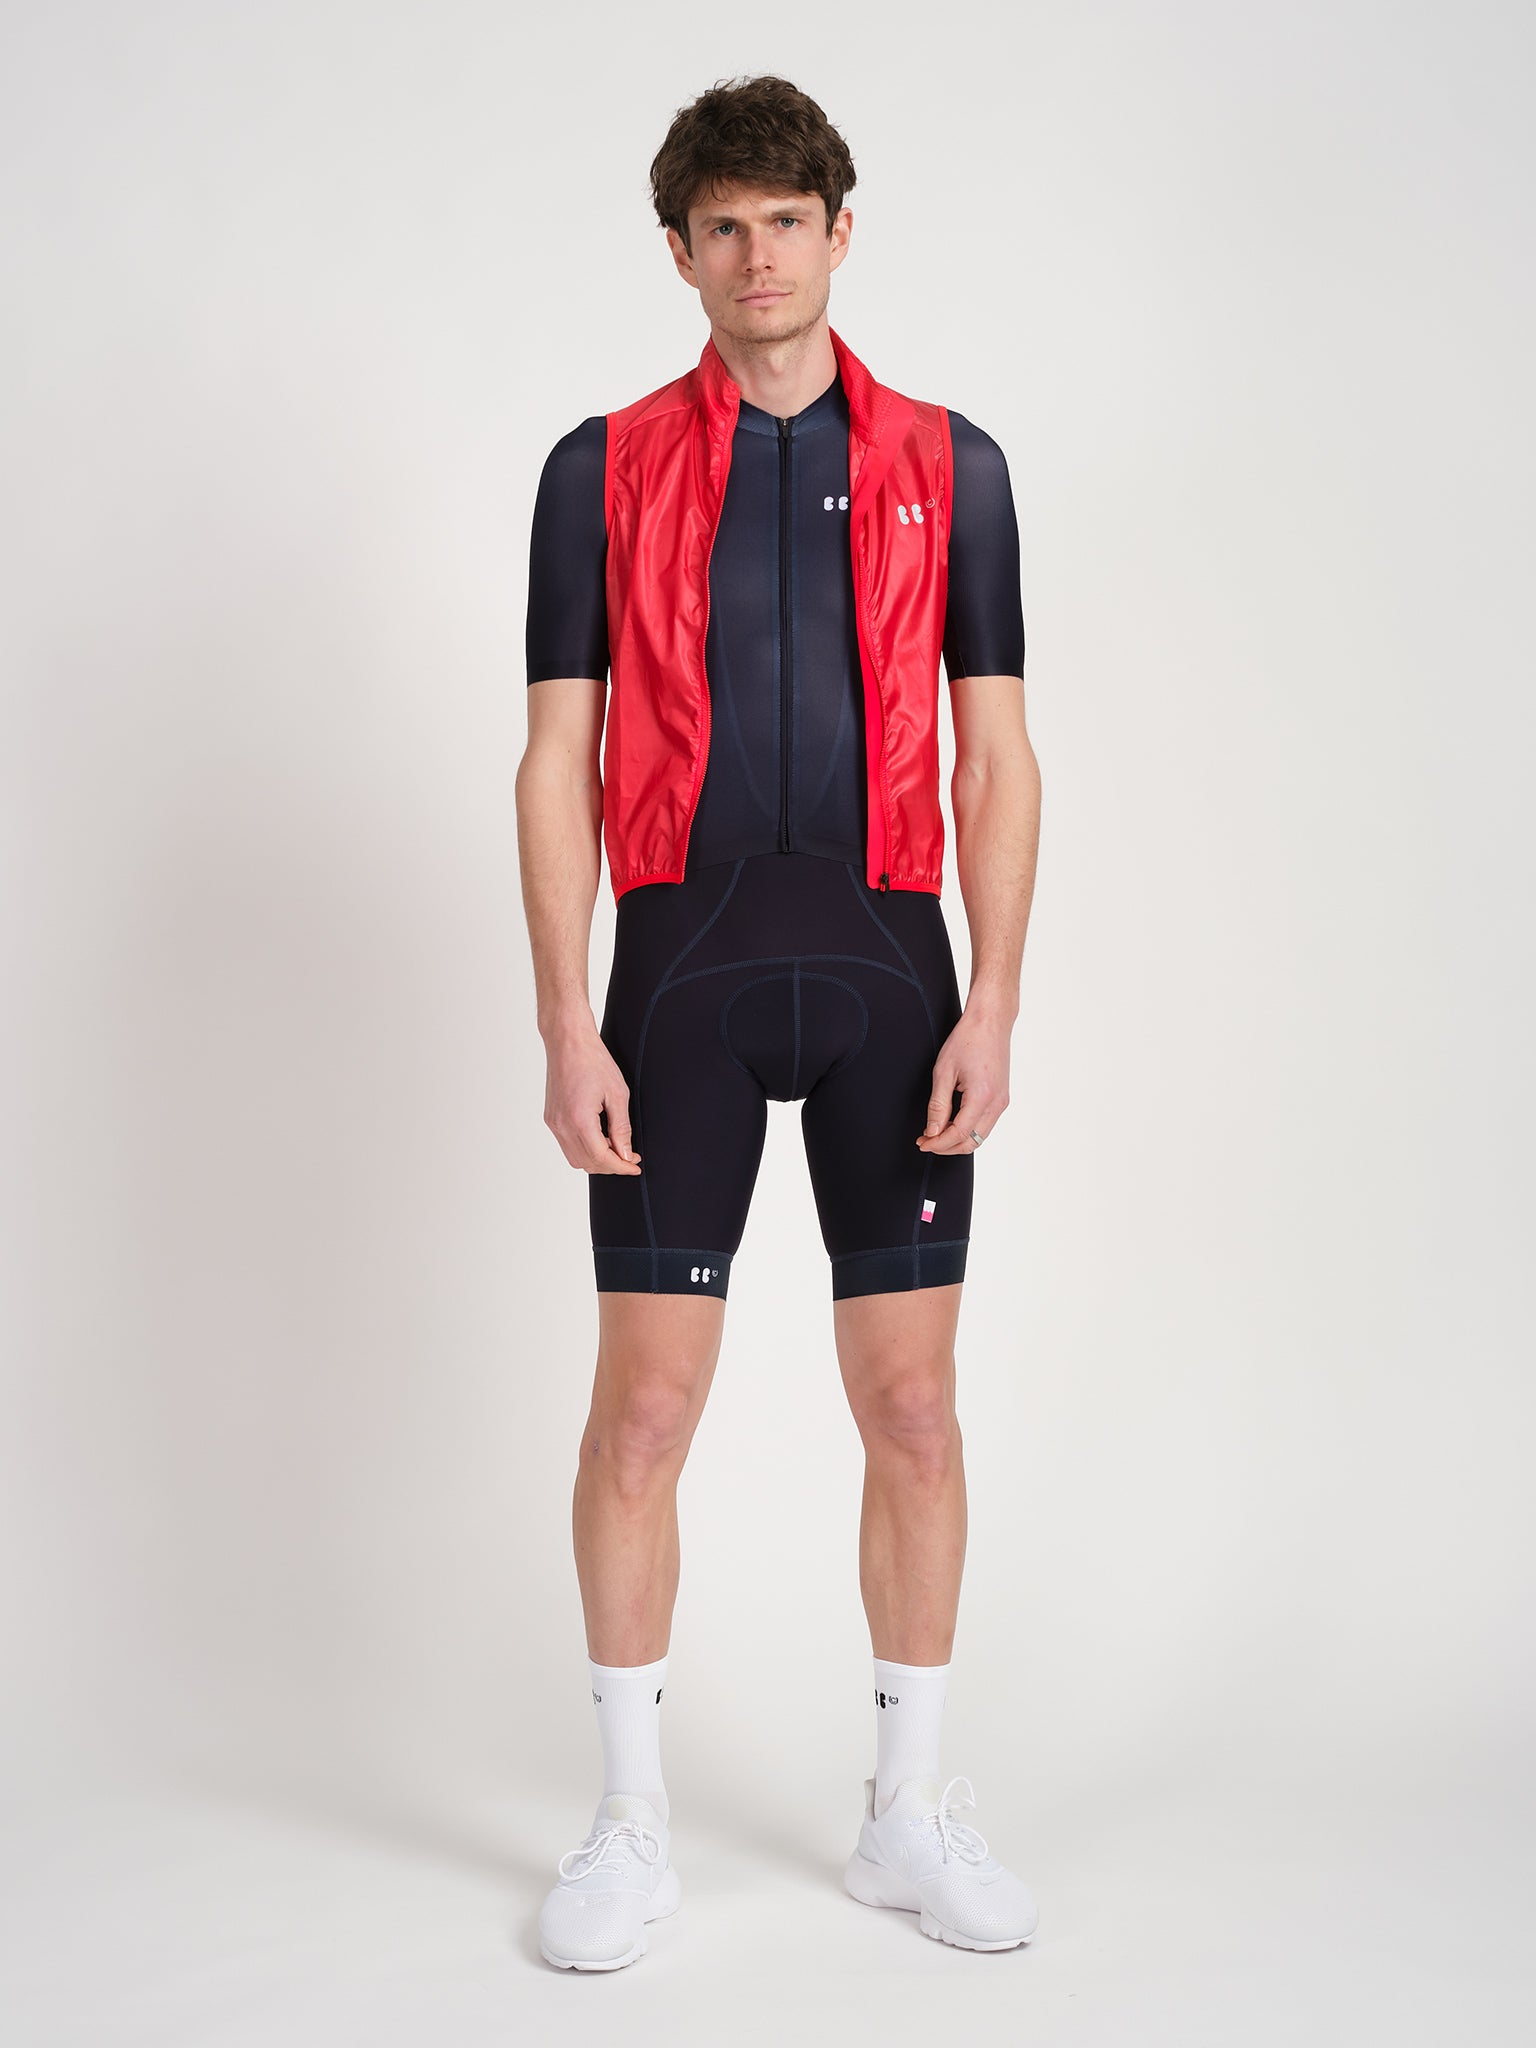 Male model wearing RD jersey with red RD gilet featuring white Racing Dream logo on back.